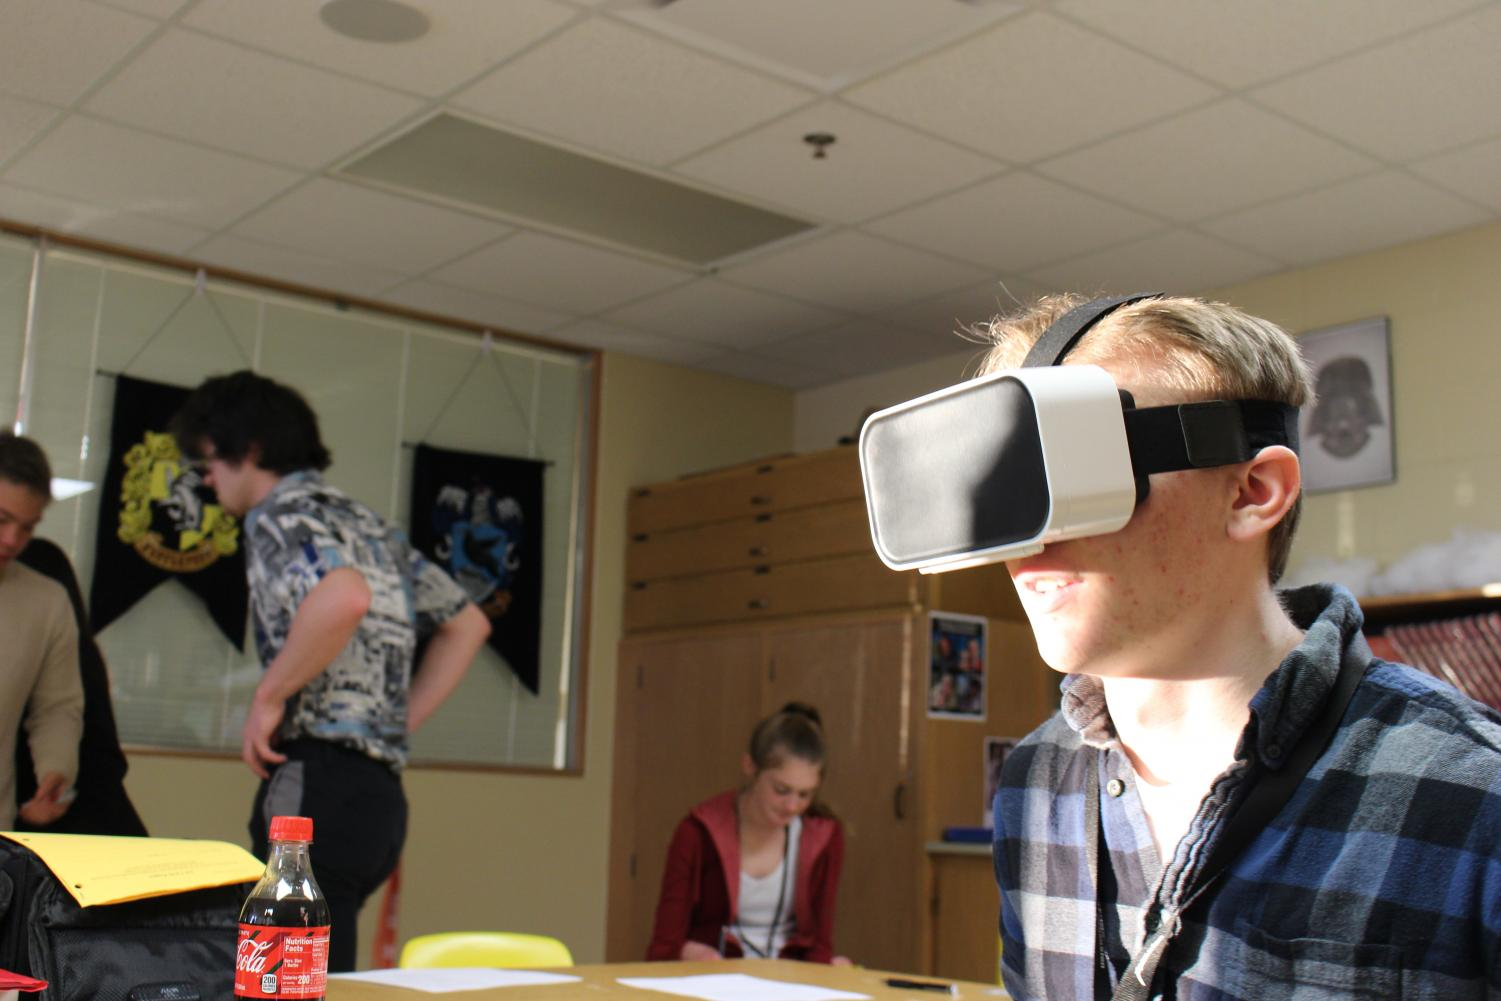 Senior Thomas Reinke tests a VR rollercoaster Photo Cred: Seth Householder